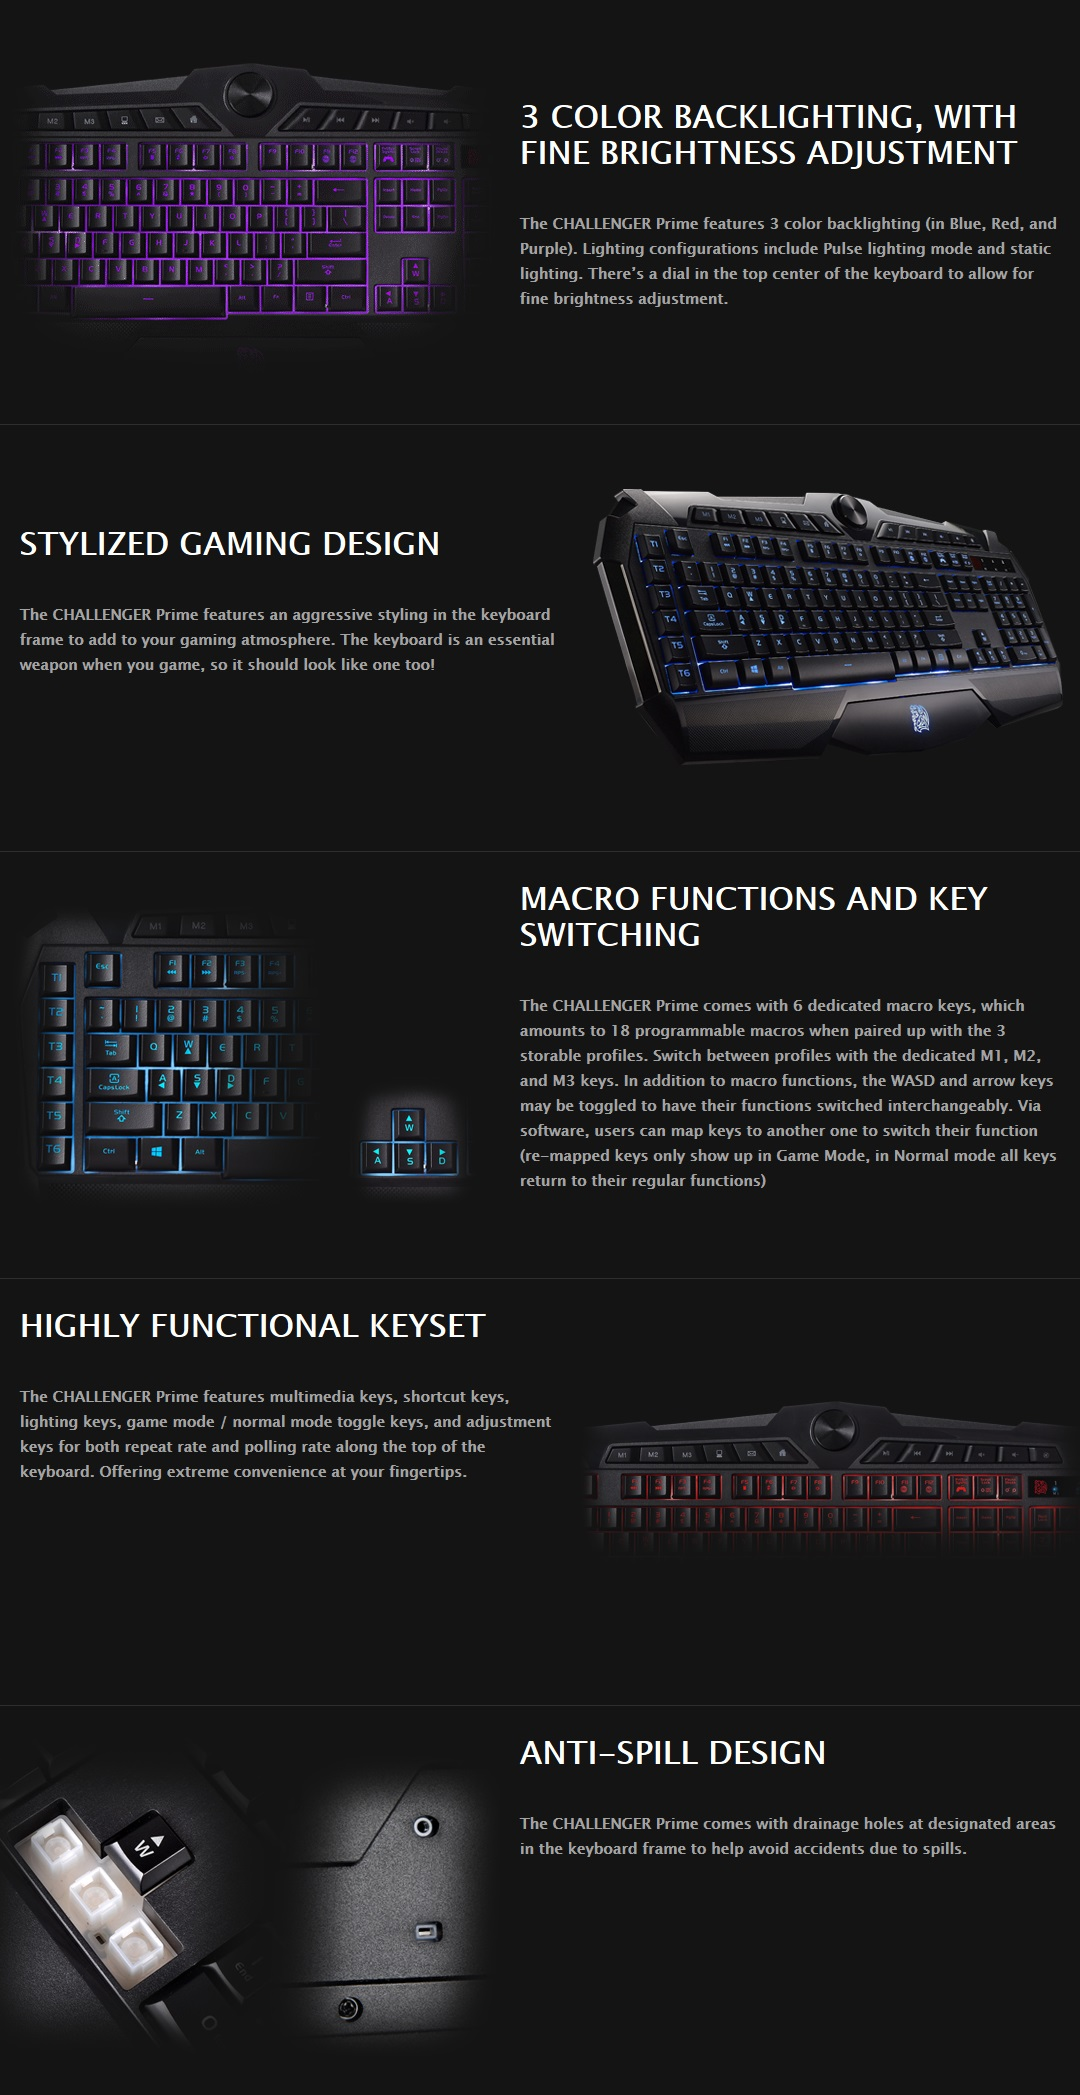 A large marketing image providing additional information about the product Tt eSports Challenger Prime Gaming Keyboard - Additional alt info not provided